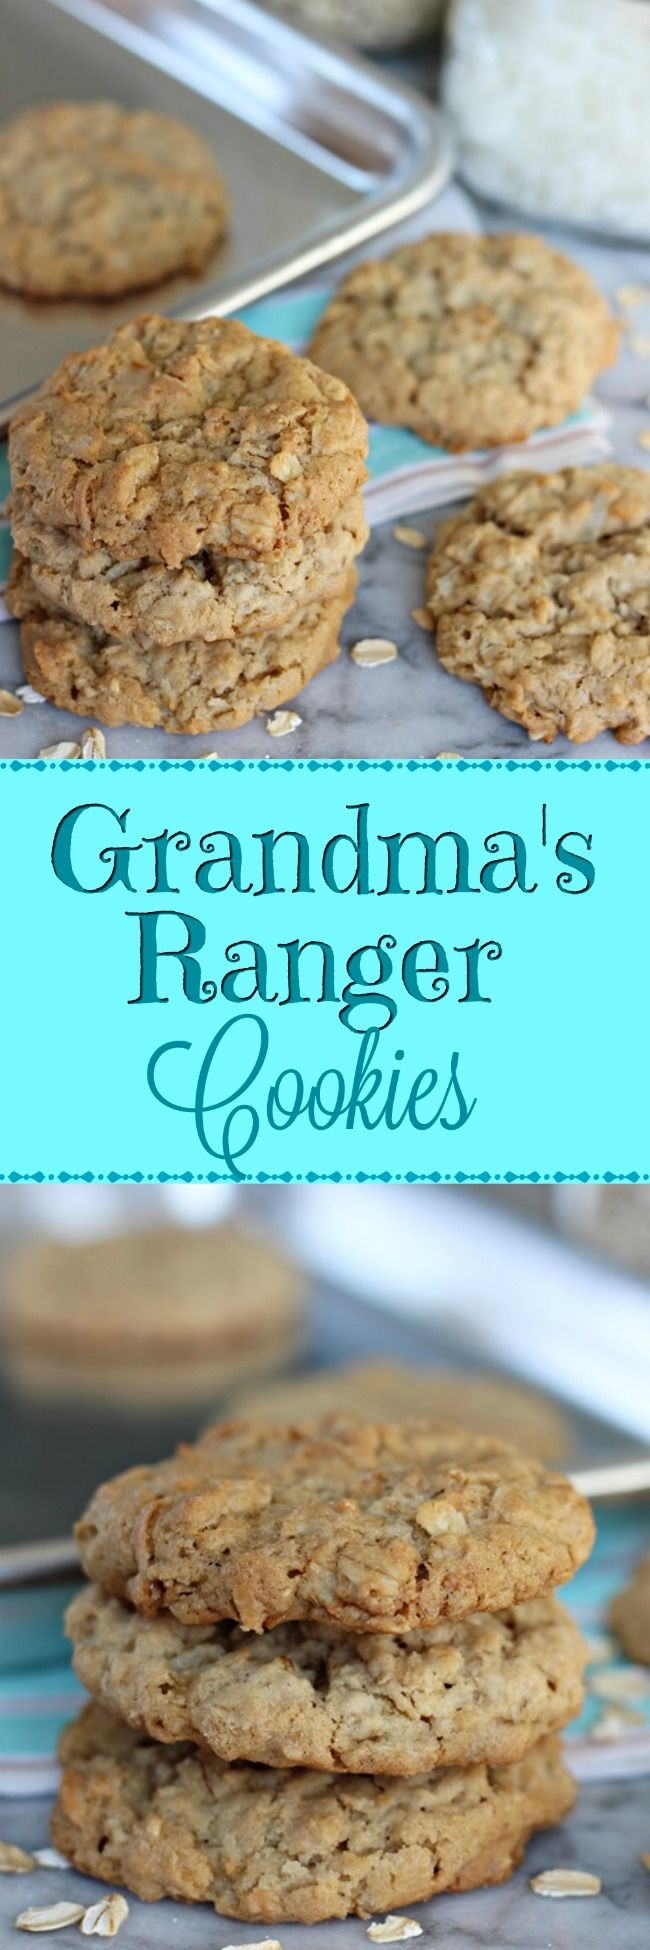 Grandma's Ranger Cookies – A chewy, hearty, perfectly sweet cookie made with old-fashioned oats, flaked coconut, and Rice Krispies. Great for dunking! | www.worthwhisking.com